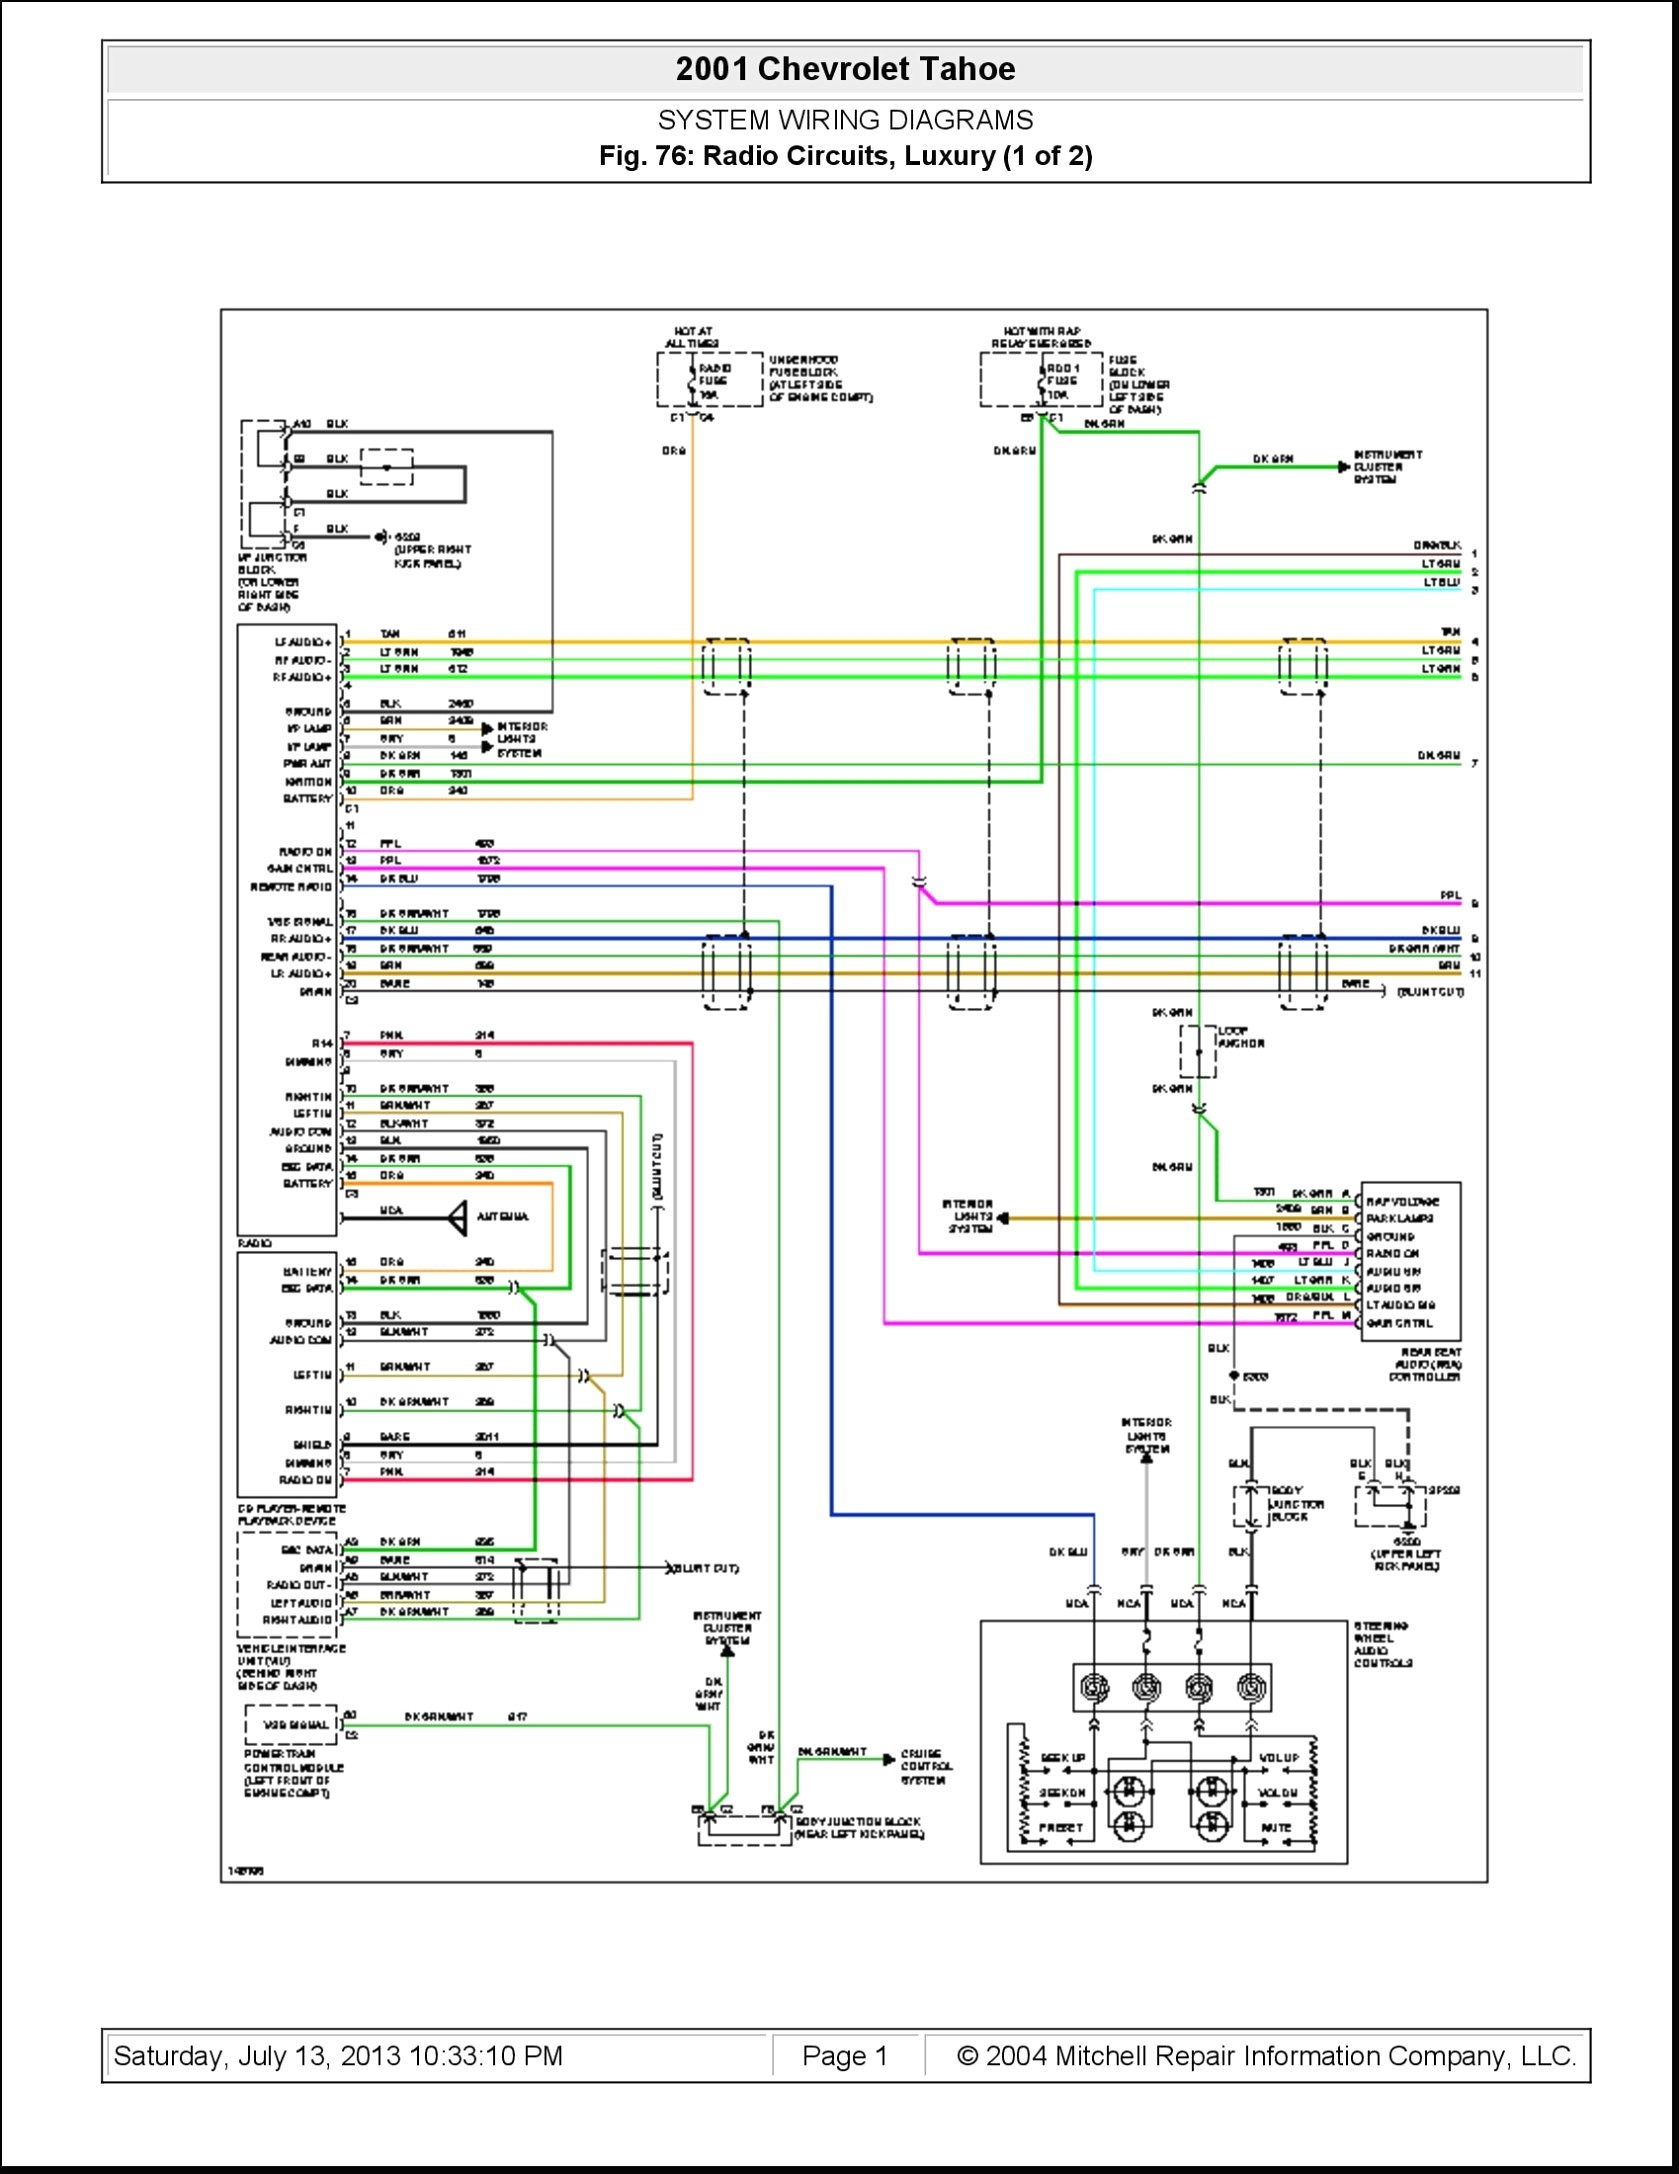 Ac Delco Radio Wiring Diagram Chevy Wiring Diagram Symbols & 57 Chevy Wiring Harness Diagram Of Ac Delco Radio Wiring Diagram